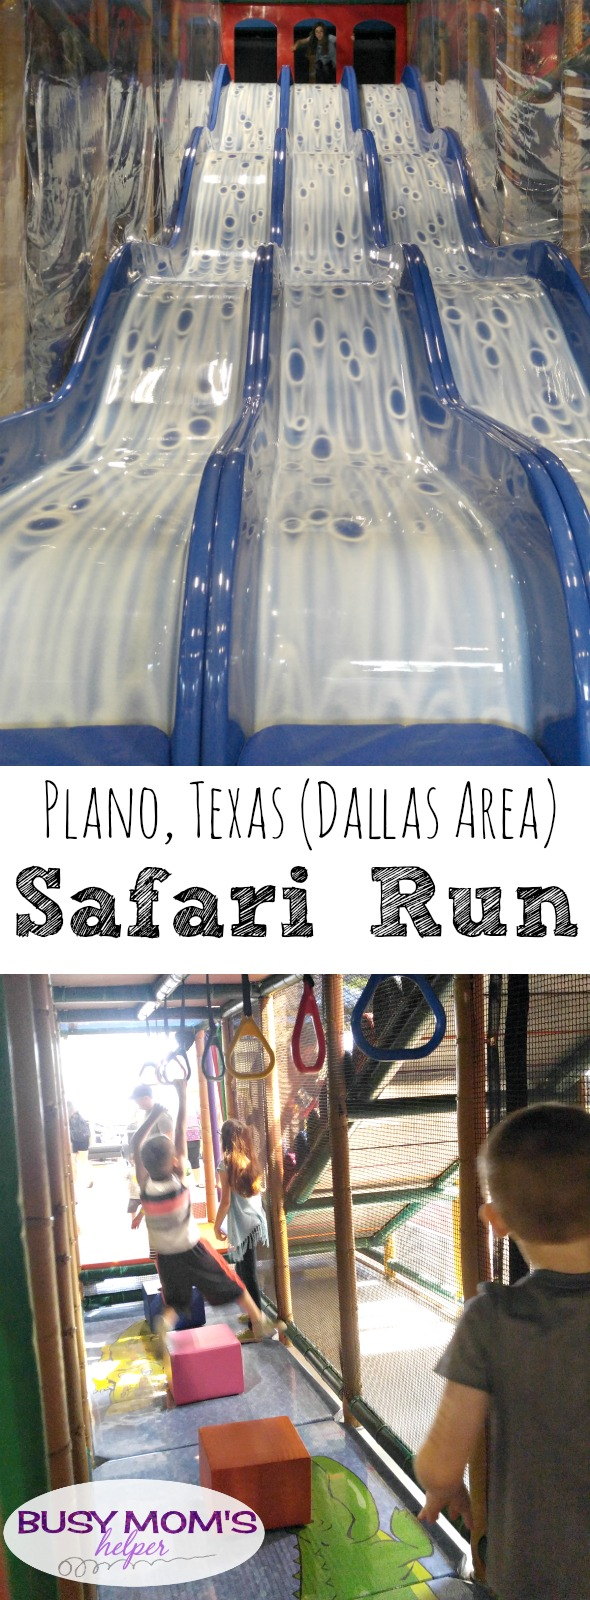 Fun Things to do in Dallas: Safari Run in Plano! By BusyMomsHelper.com #sponsored #SafariRun #IFoundTheFun